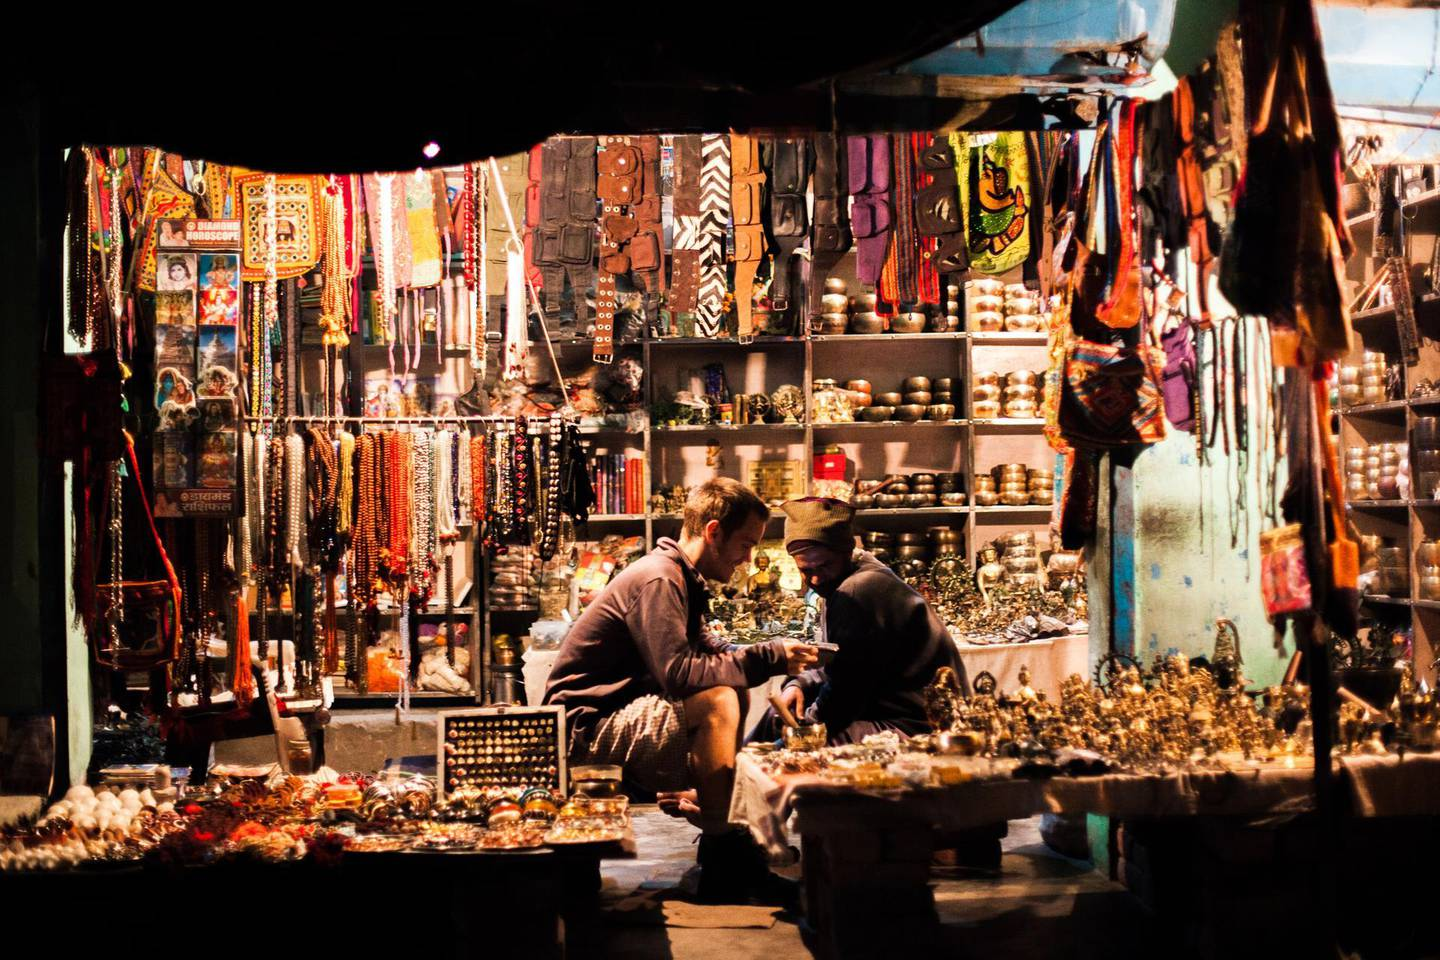 A shop selling all kind of touristy thing in the yoga town of Rishikesh in the Himalayan foothills by Ganga river in India. Famous for its yoga ashrams and being the yoga capital for the world. Getty Images